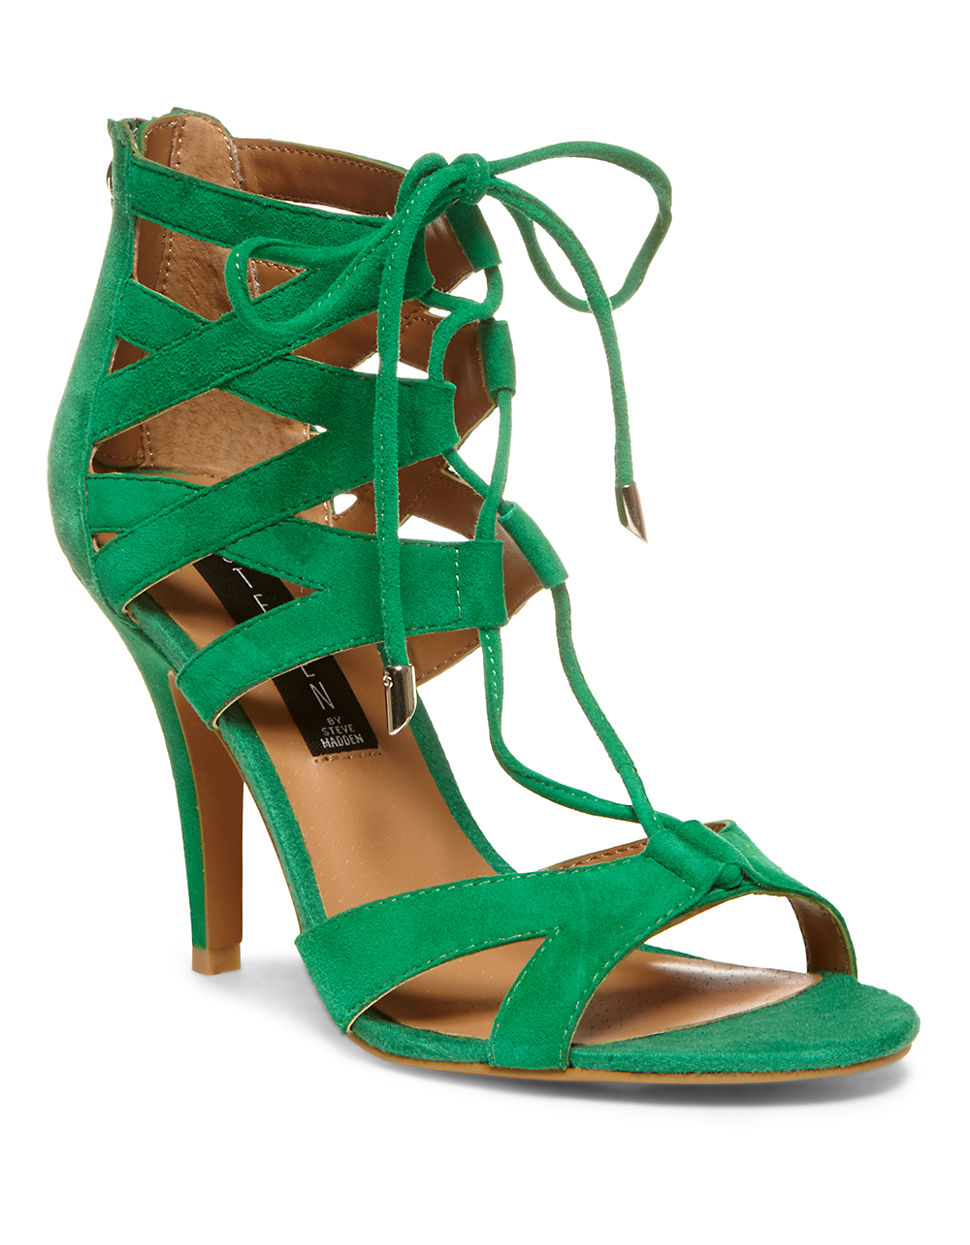 steven by steve madden gingir high heel sandals in green. Black Bedroom Furniture Sets. Home Design Ideas